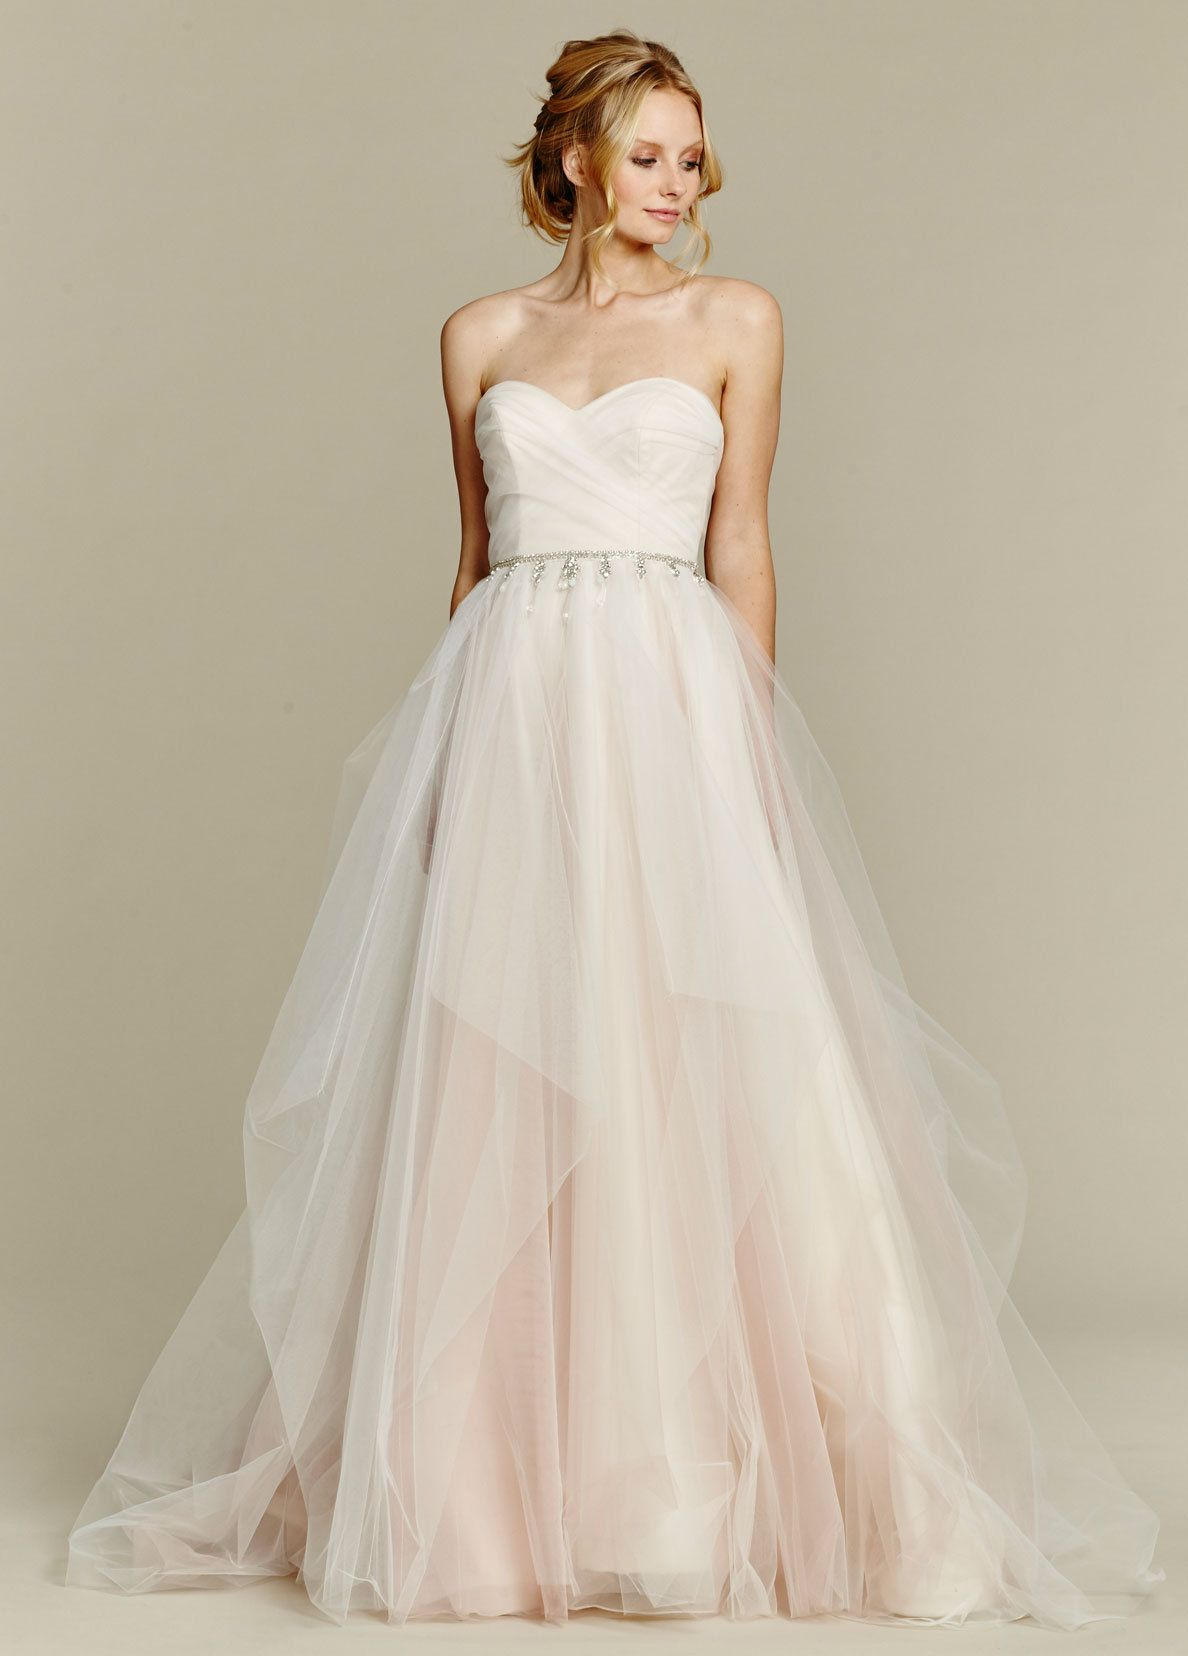 Dolce cherry blossom draped tulle bridal ball gown strapless